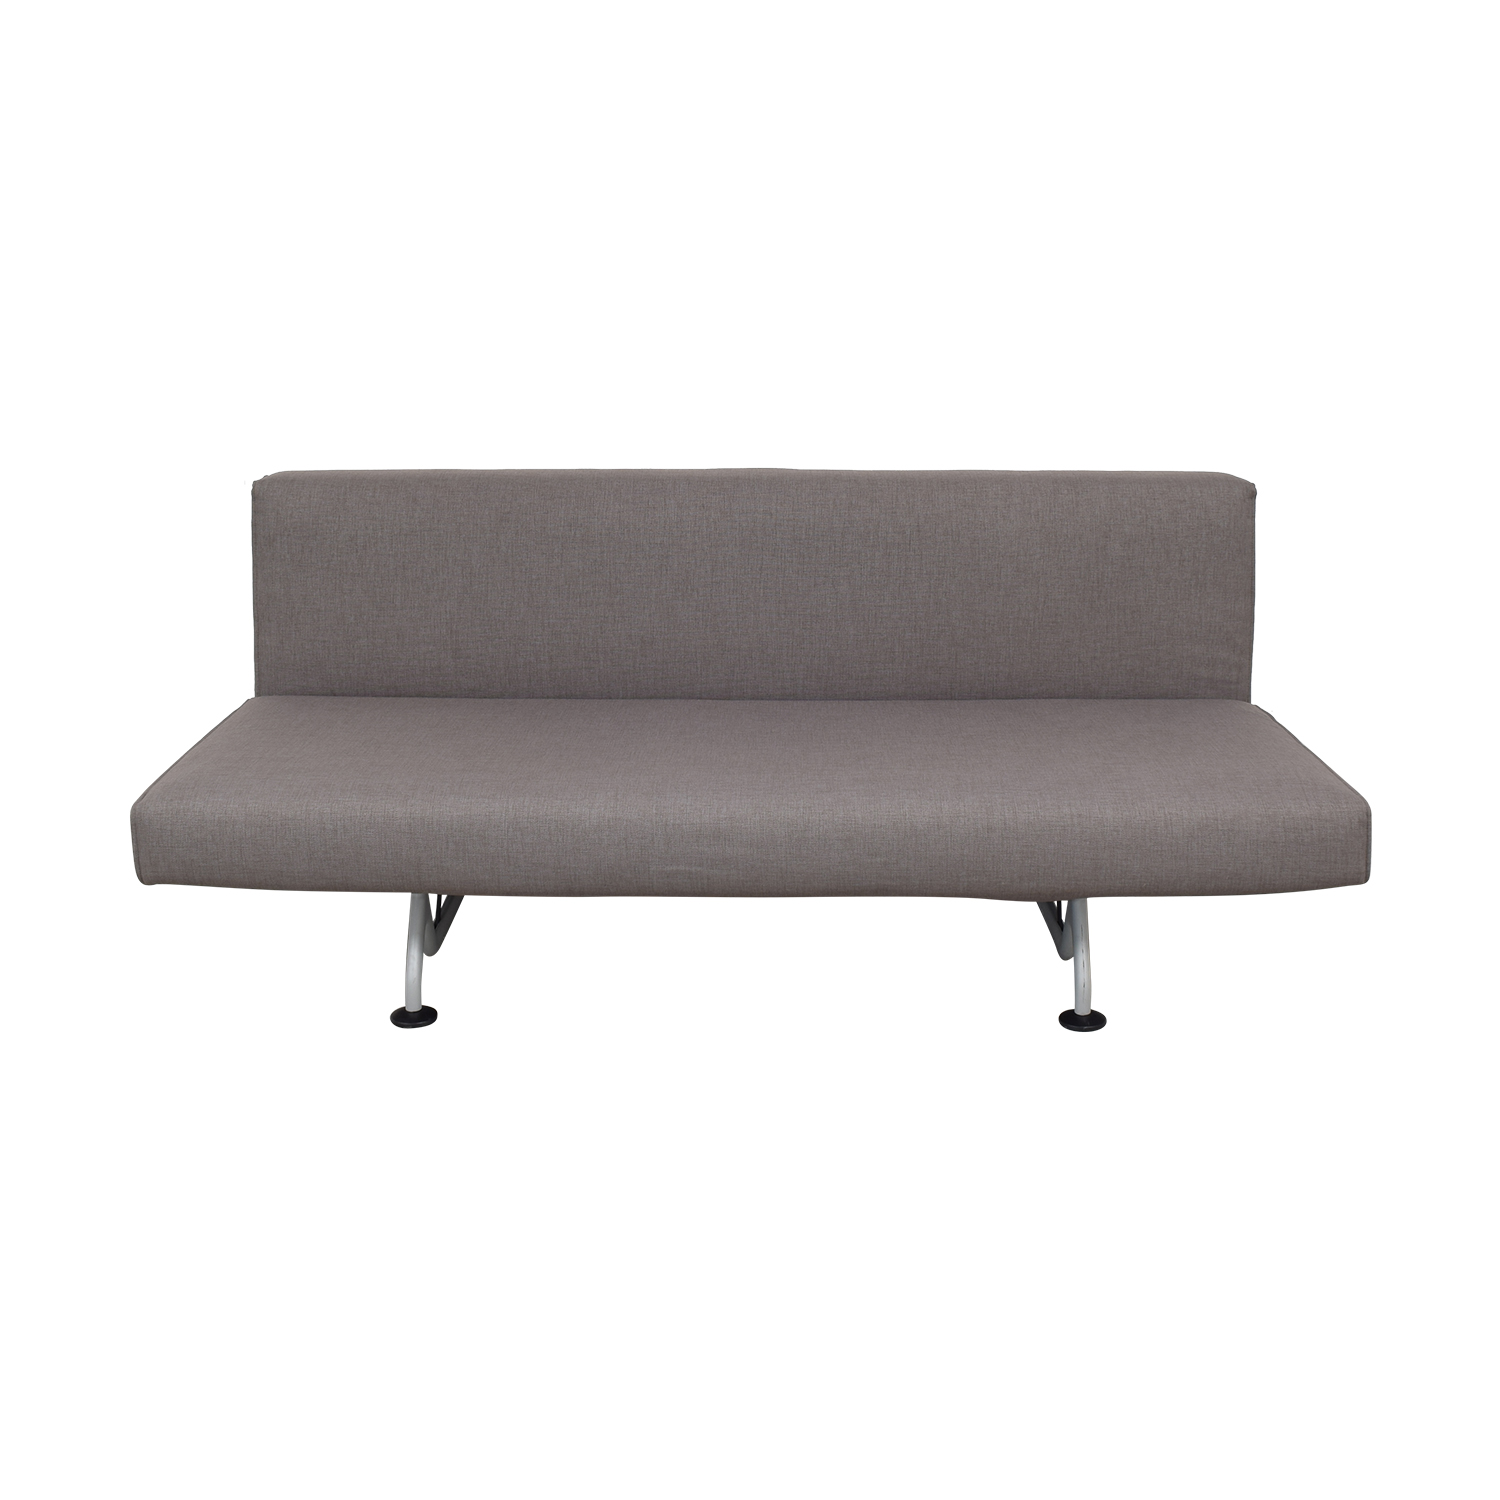 buy Tacchini Sliding Sofa Bed Tacchini Sofa Beds